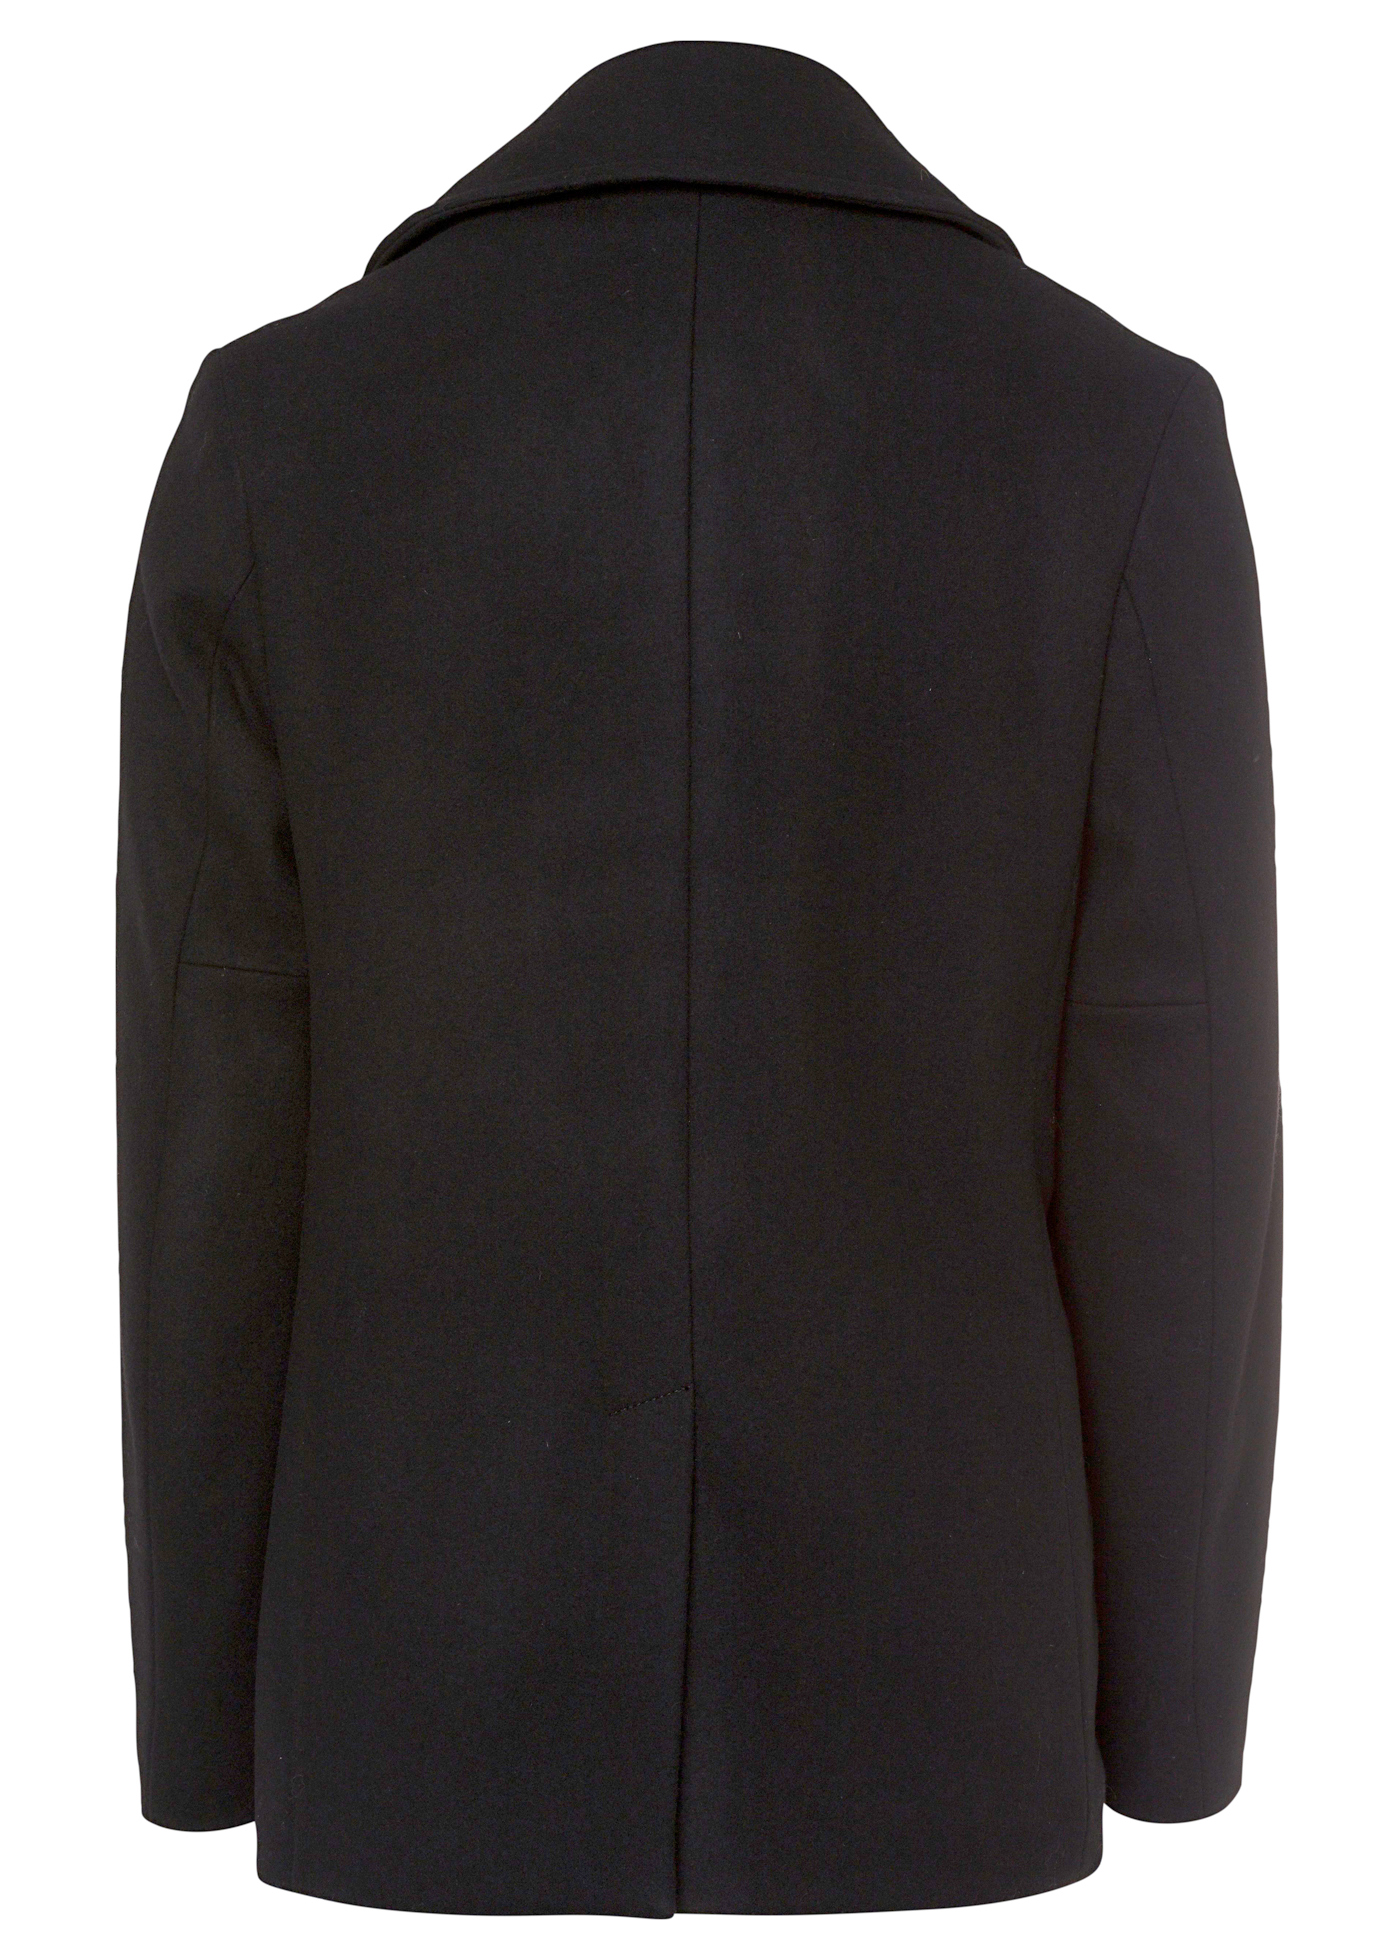 PEACOAT image number 1